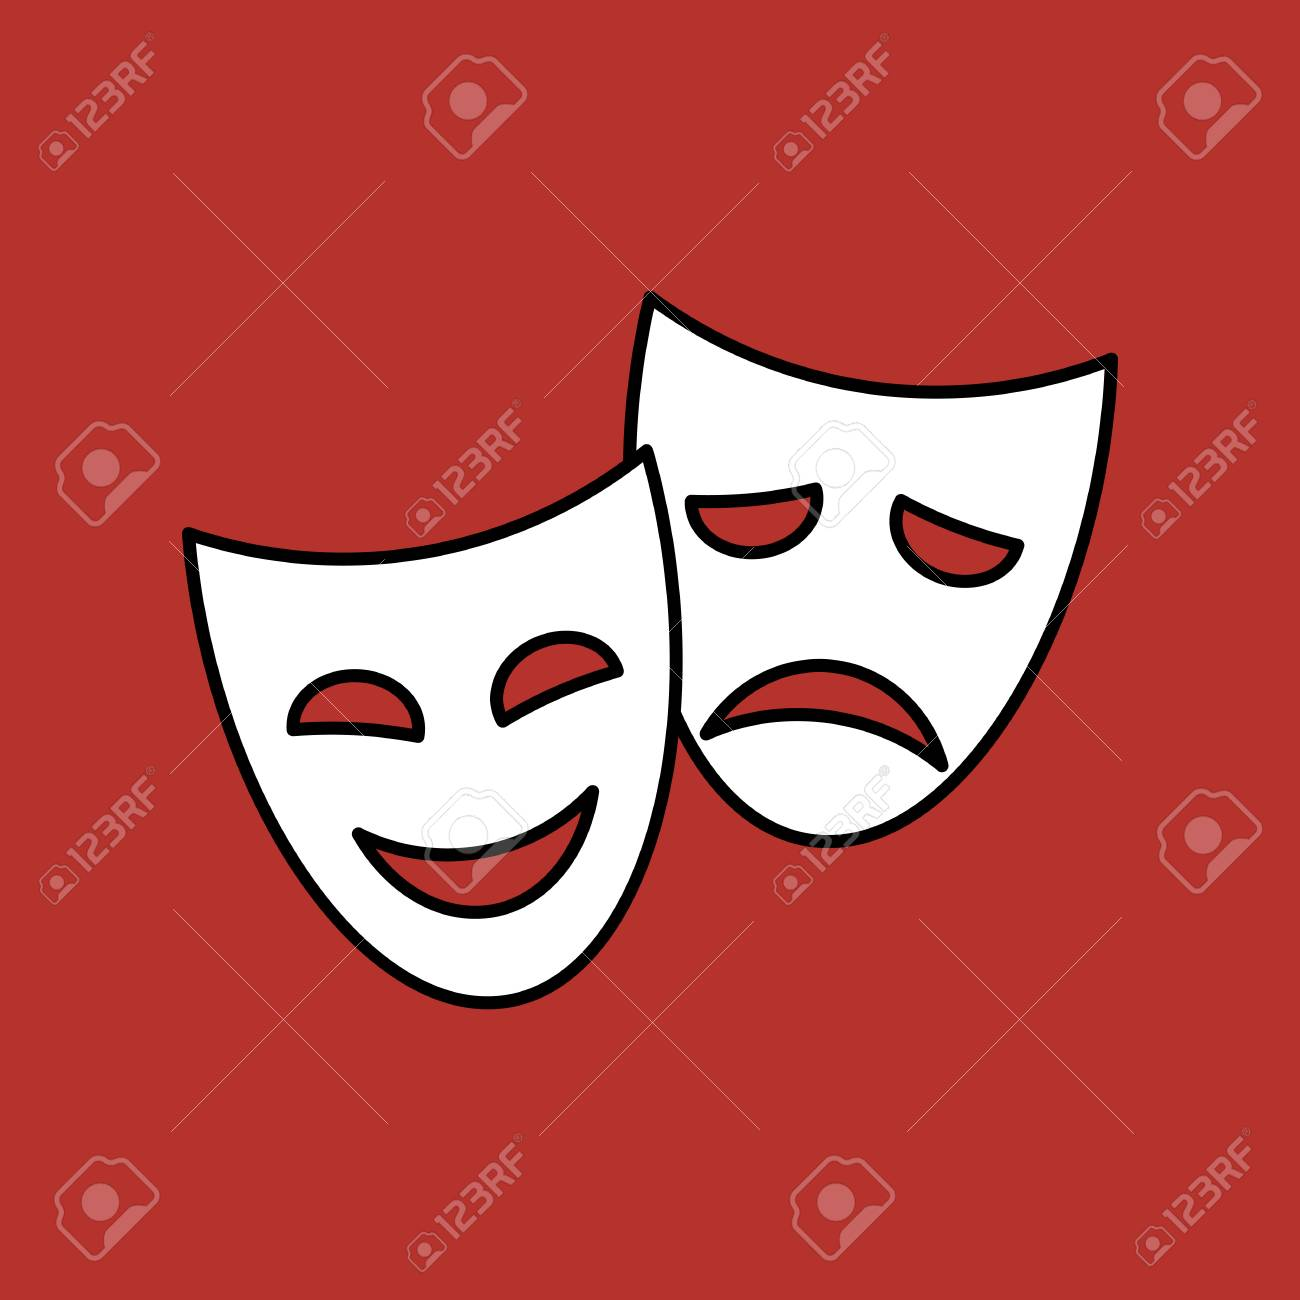 Funny and sad theater masks, vector linear icon on red background